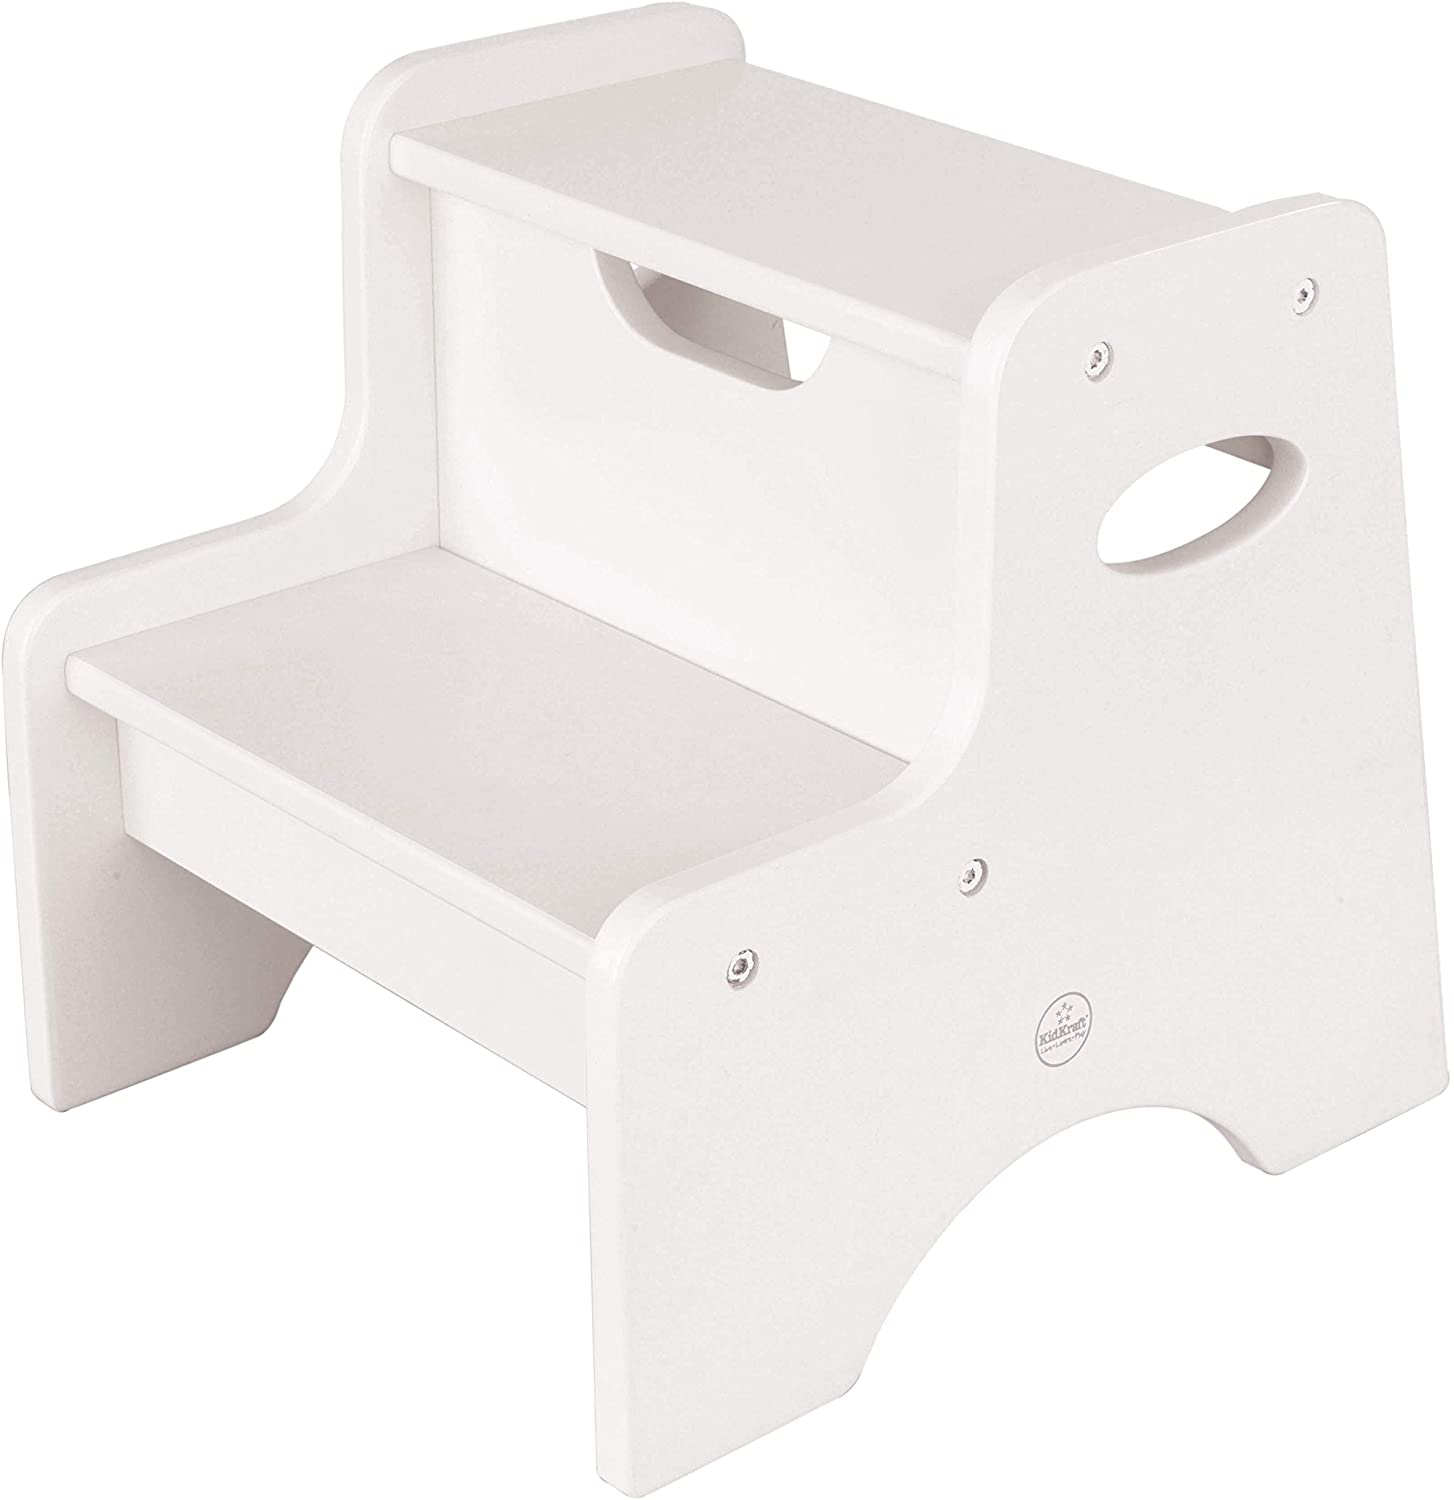 white KidKraft Wooden Two Step Children's Stool with Handles on a white background